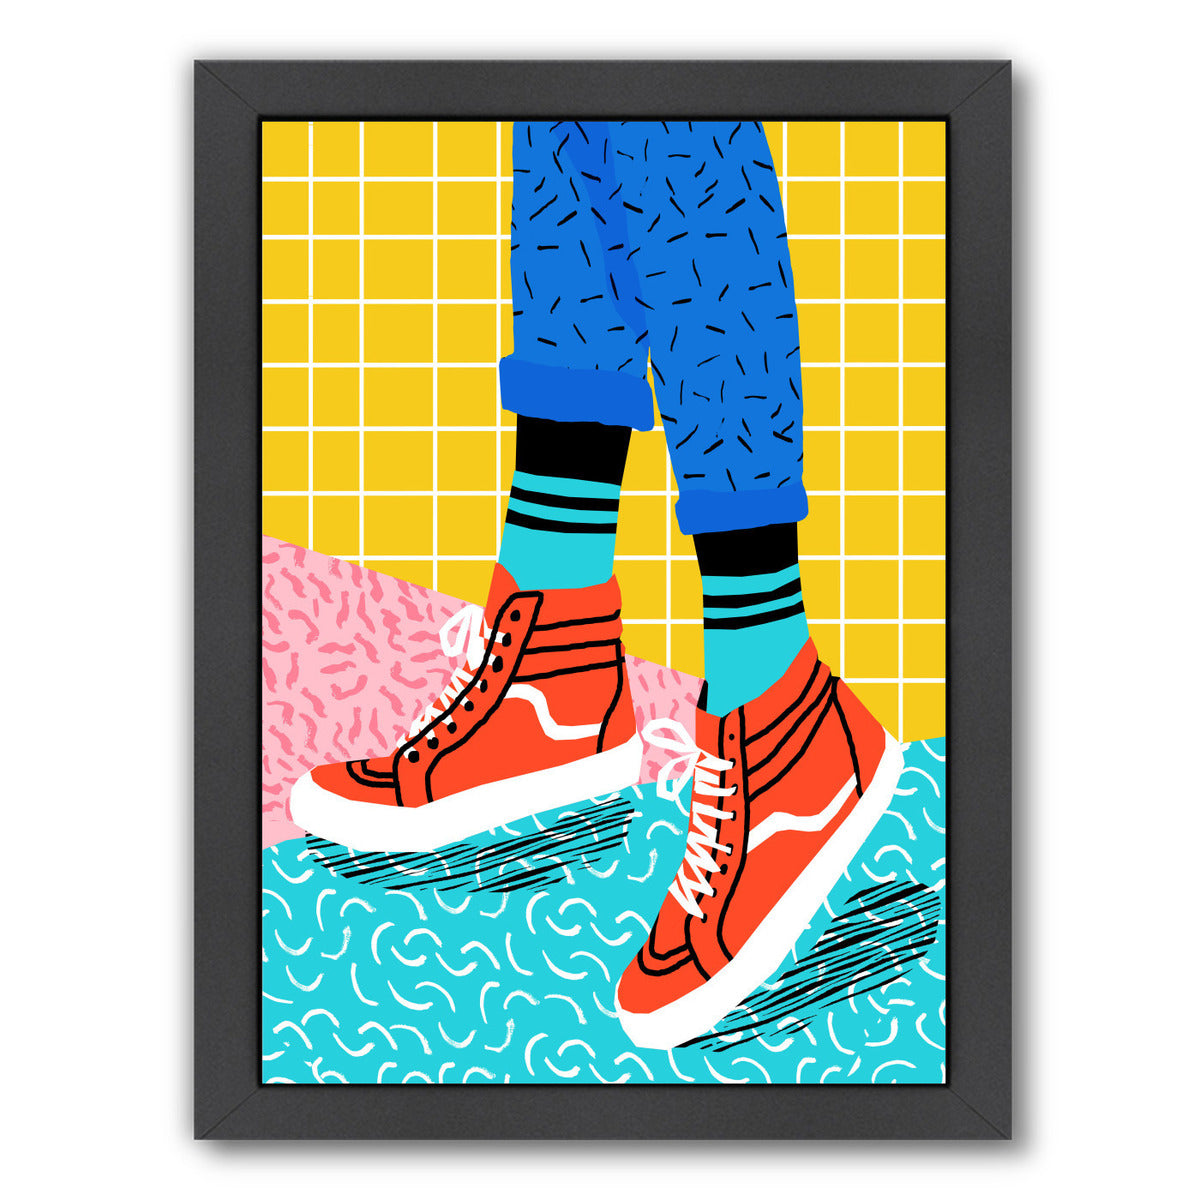 Toe Drag by Wacka Designs Framed Print - Wall Art - Americanflat